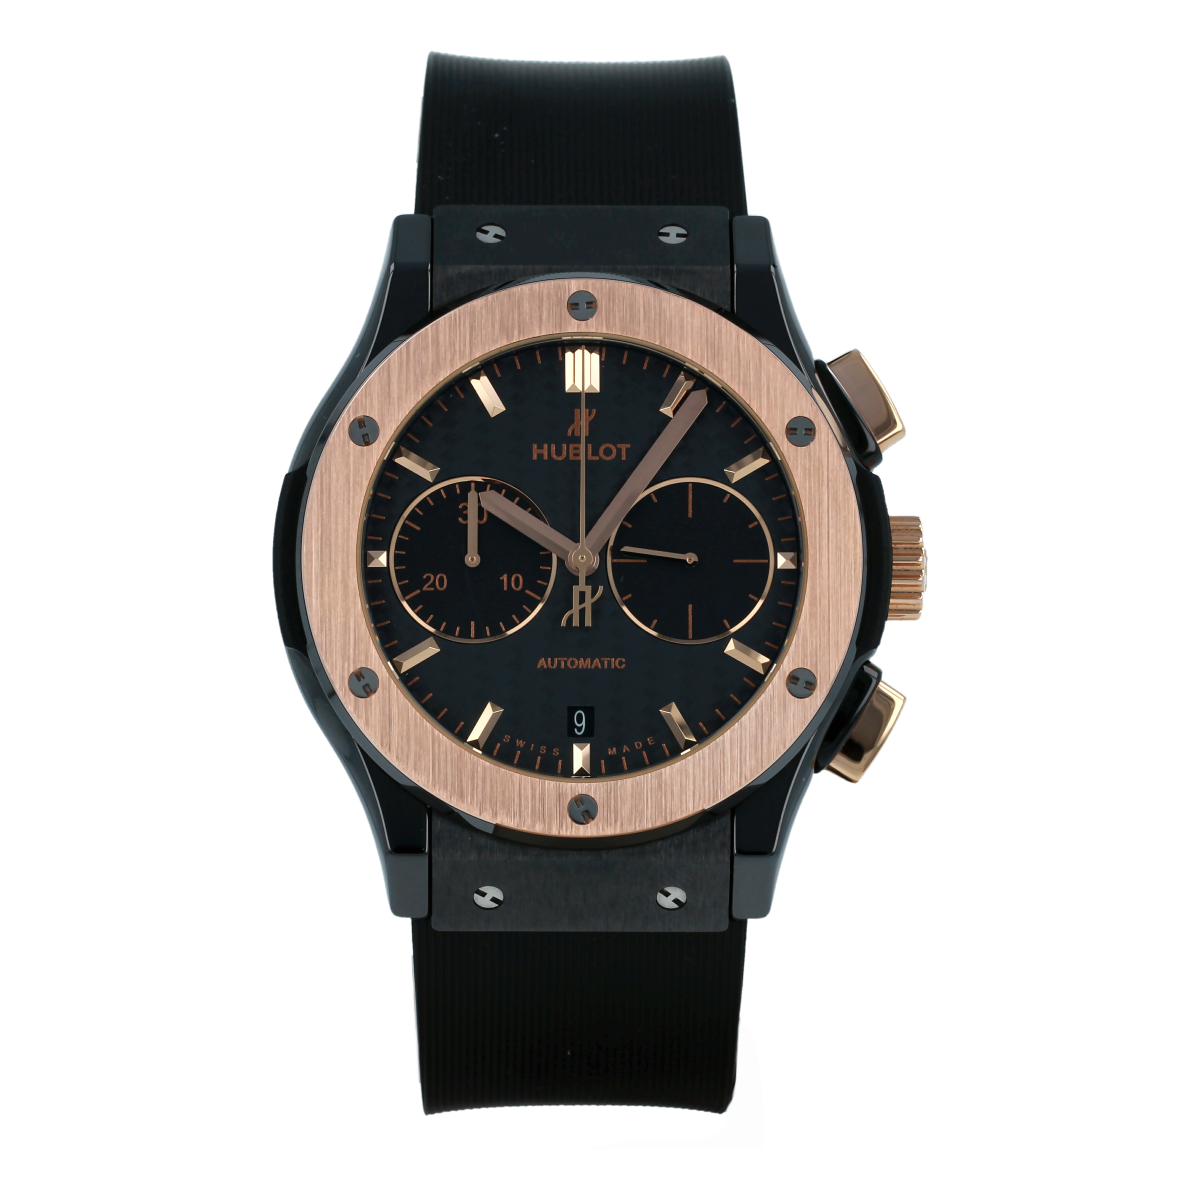 Hublot Classic Fusion 45mm Chronograph Rose Gold *New* | Buy pre-owned Hublot watch